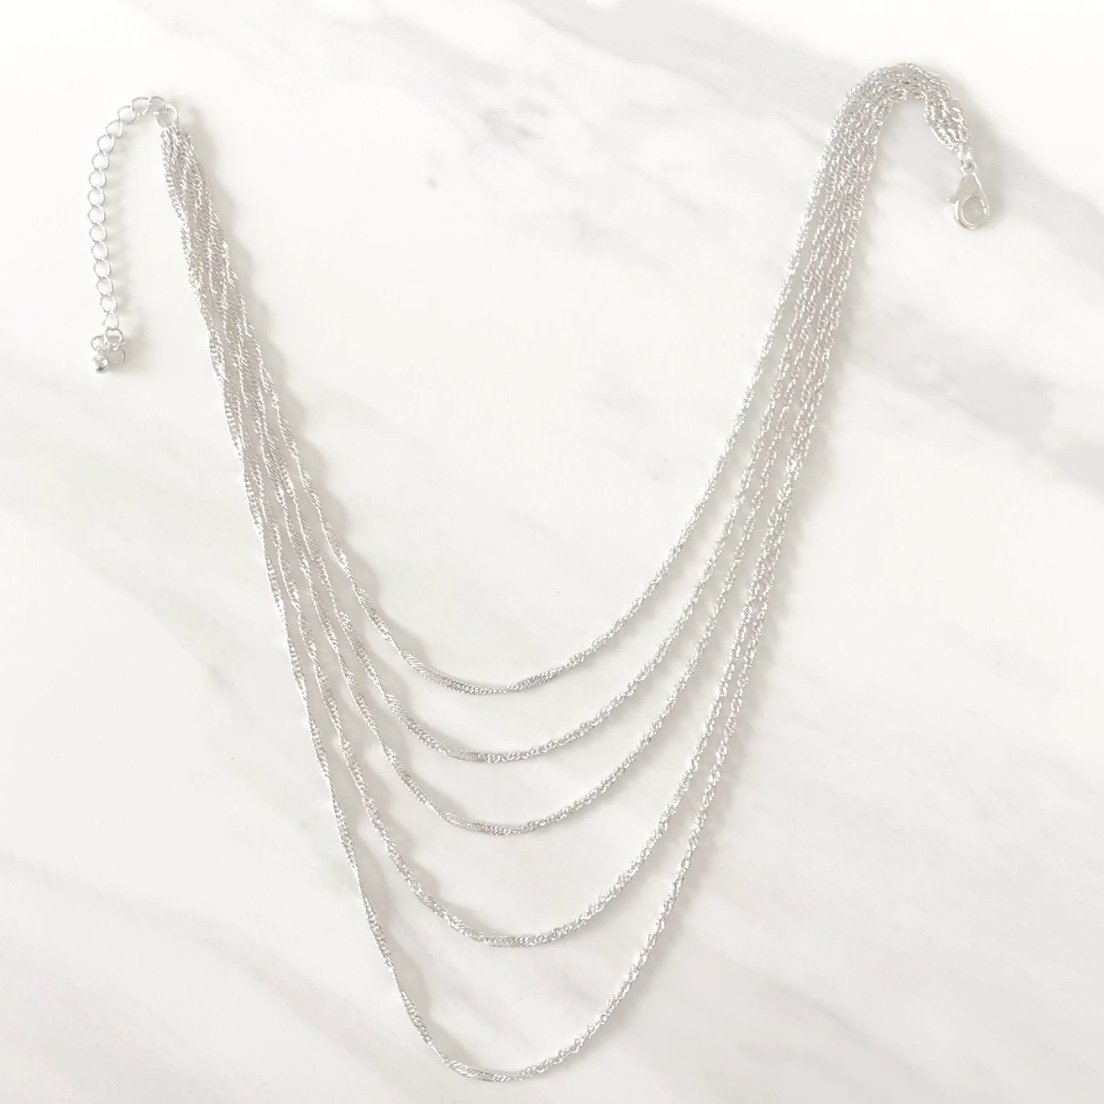 Chains That Bind Us Silver Layered Necklace